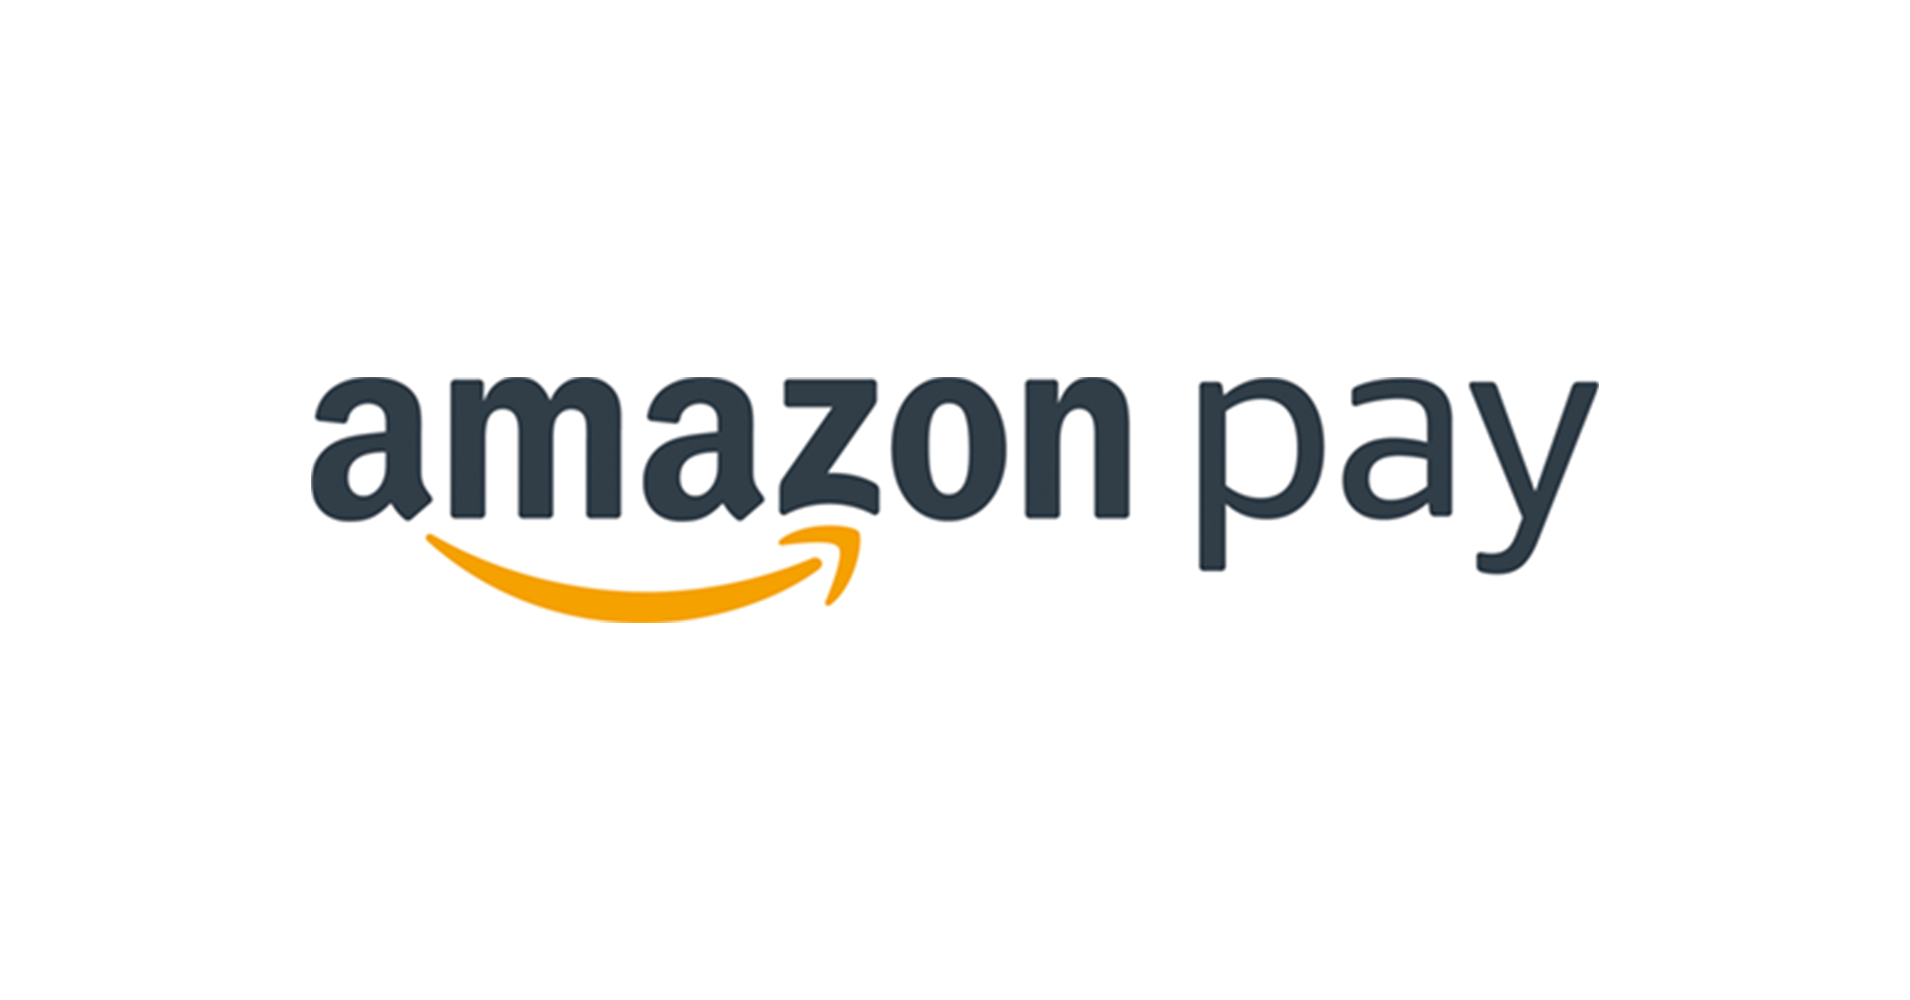 Amazon Payが使えます / Amazon pay is now available!